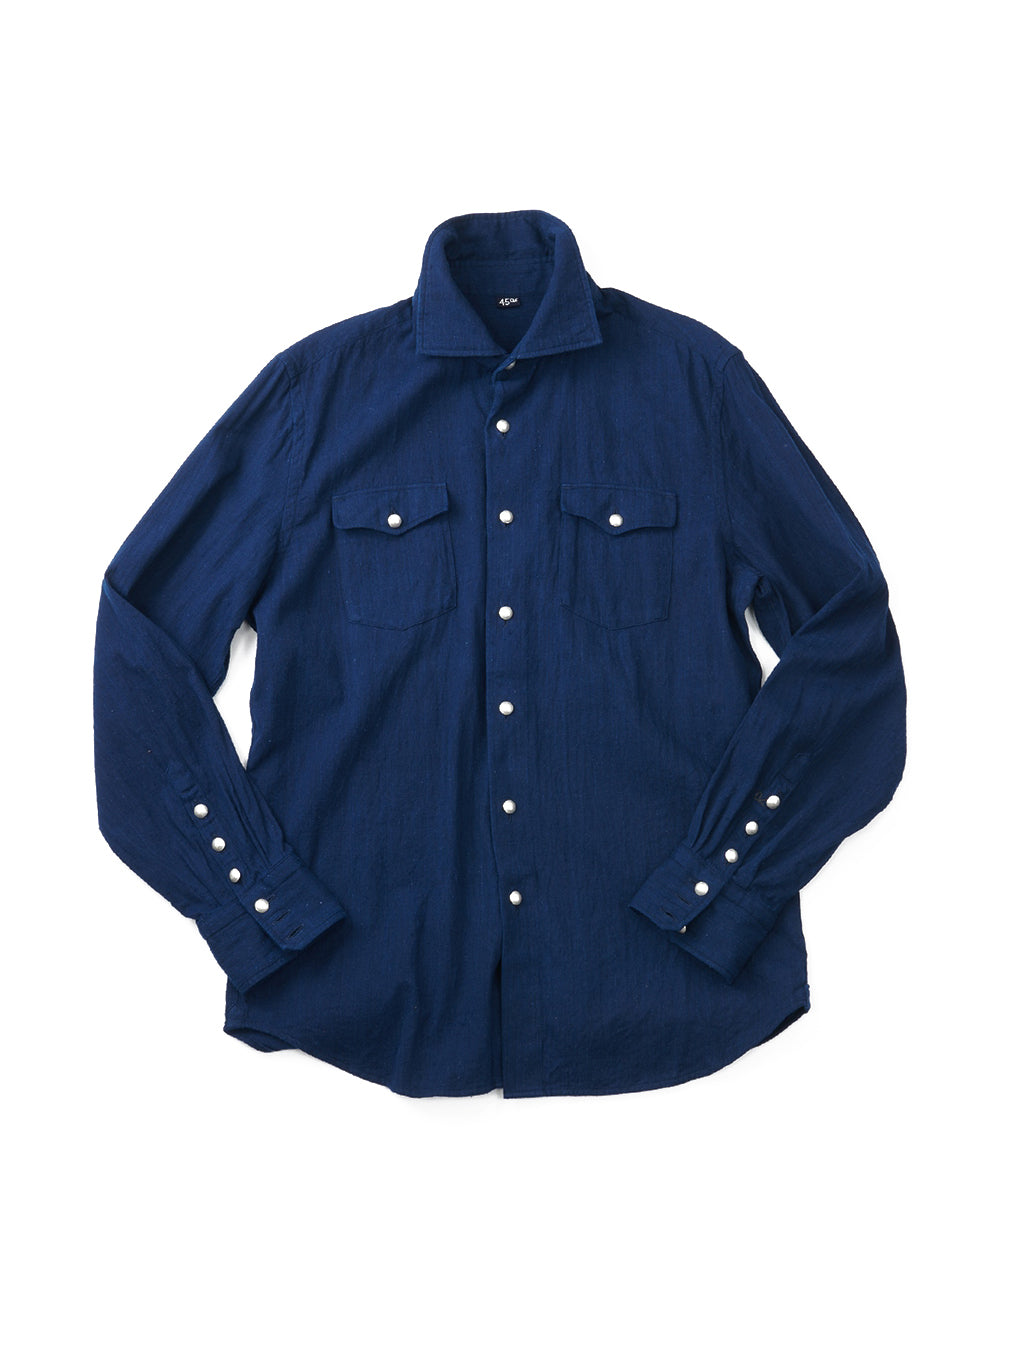 Ai Khadi Denim 908 Shirt